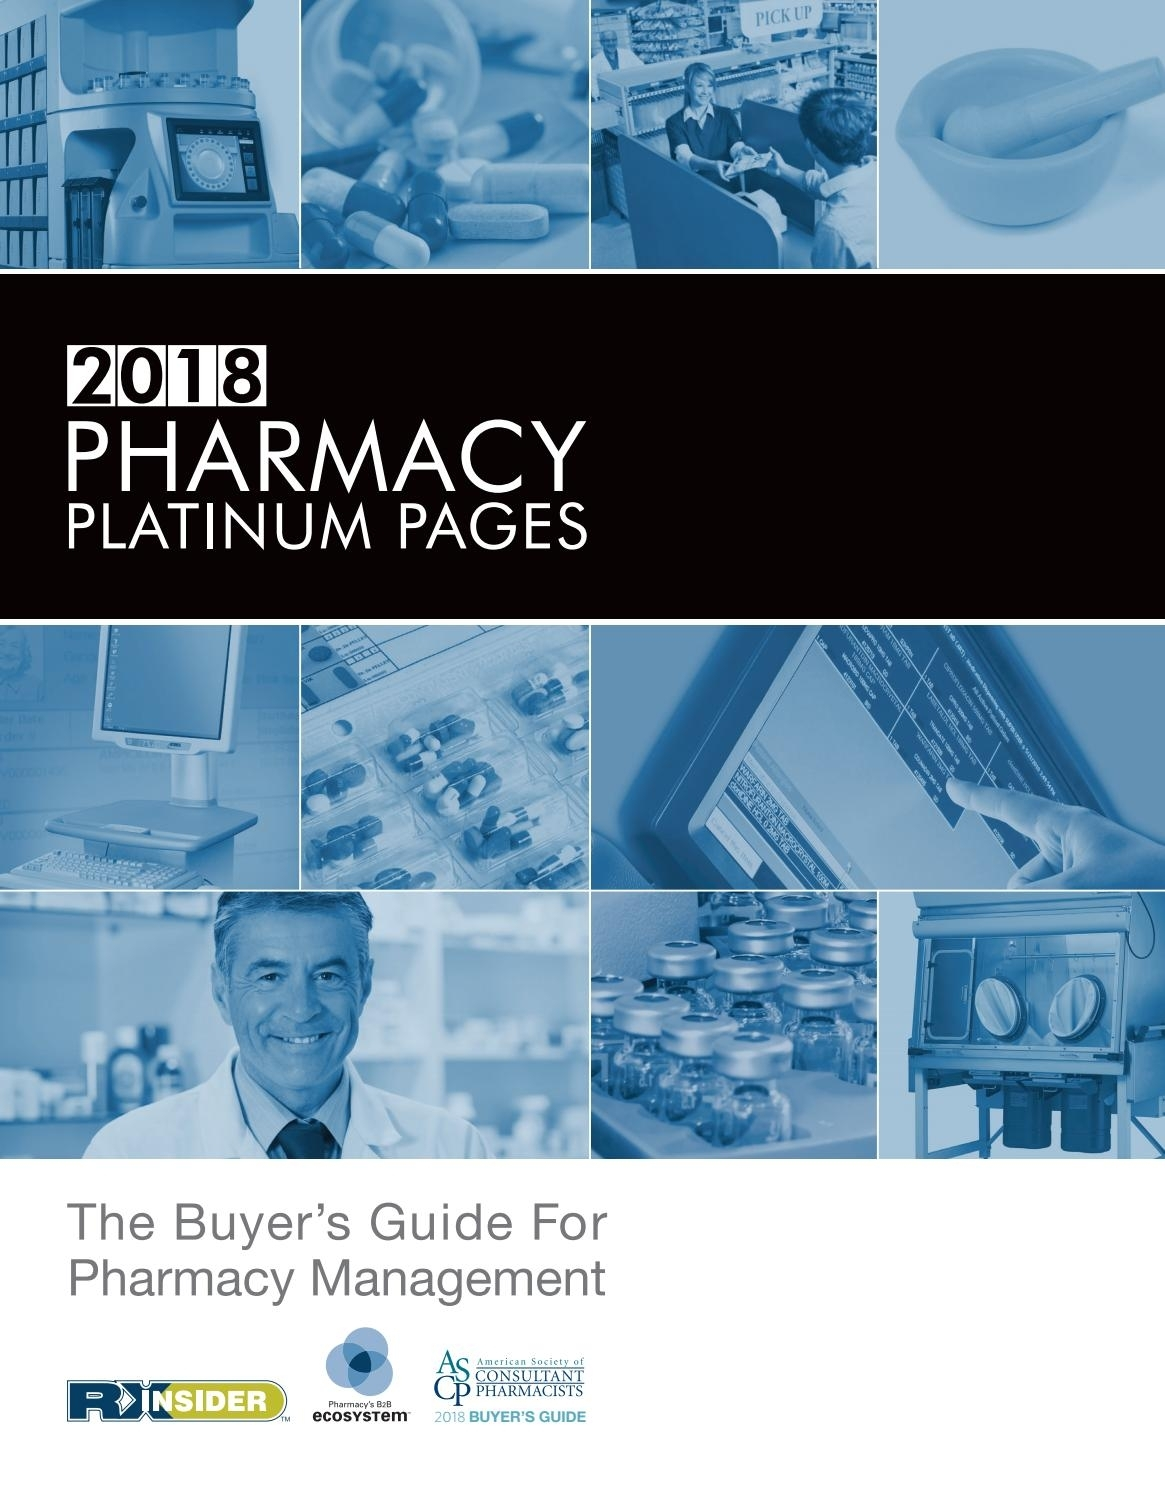 2018 Pharmacy Platinum Pages By Rxinsider - Issuu